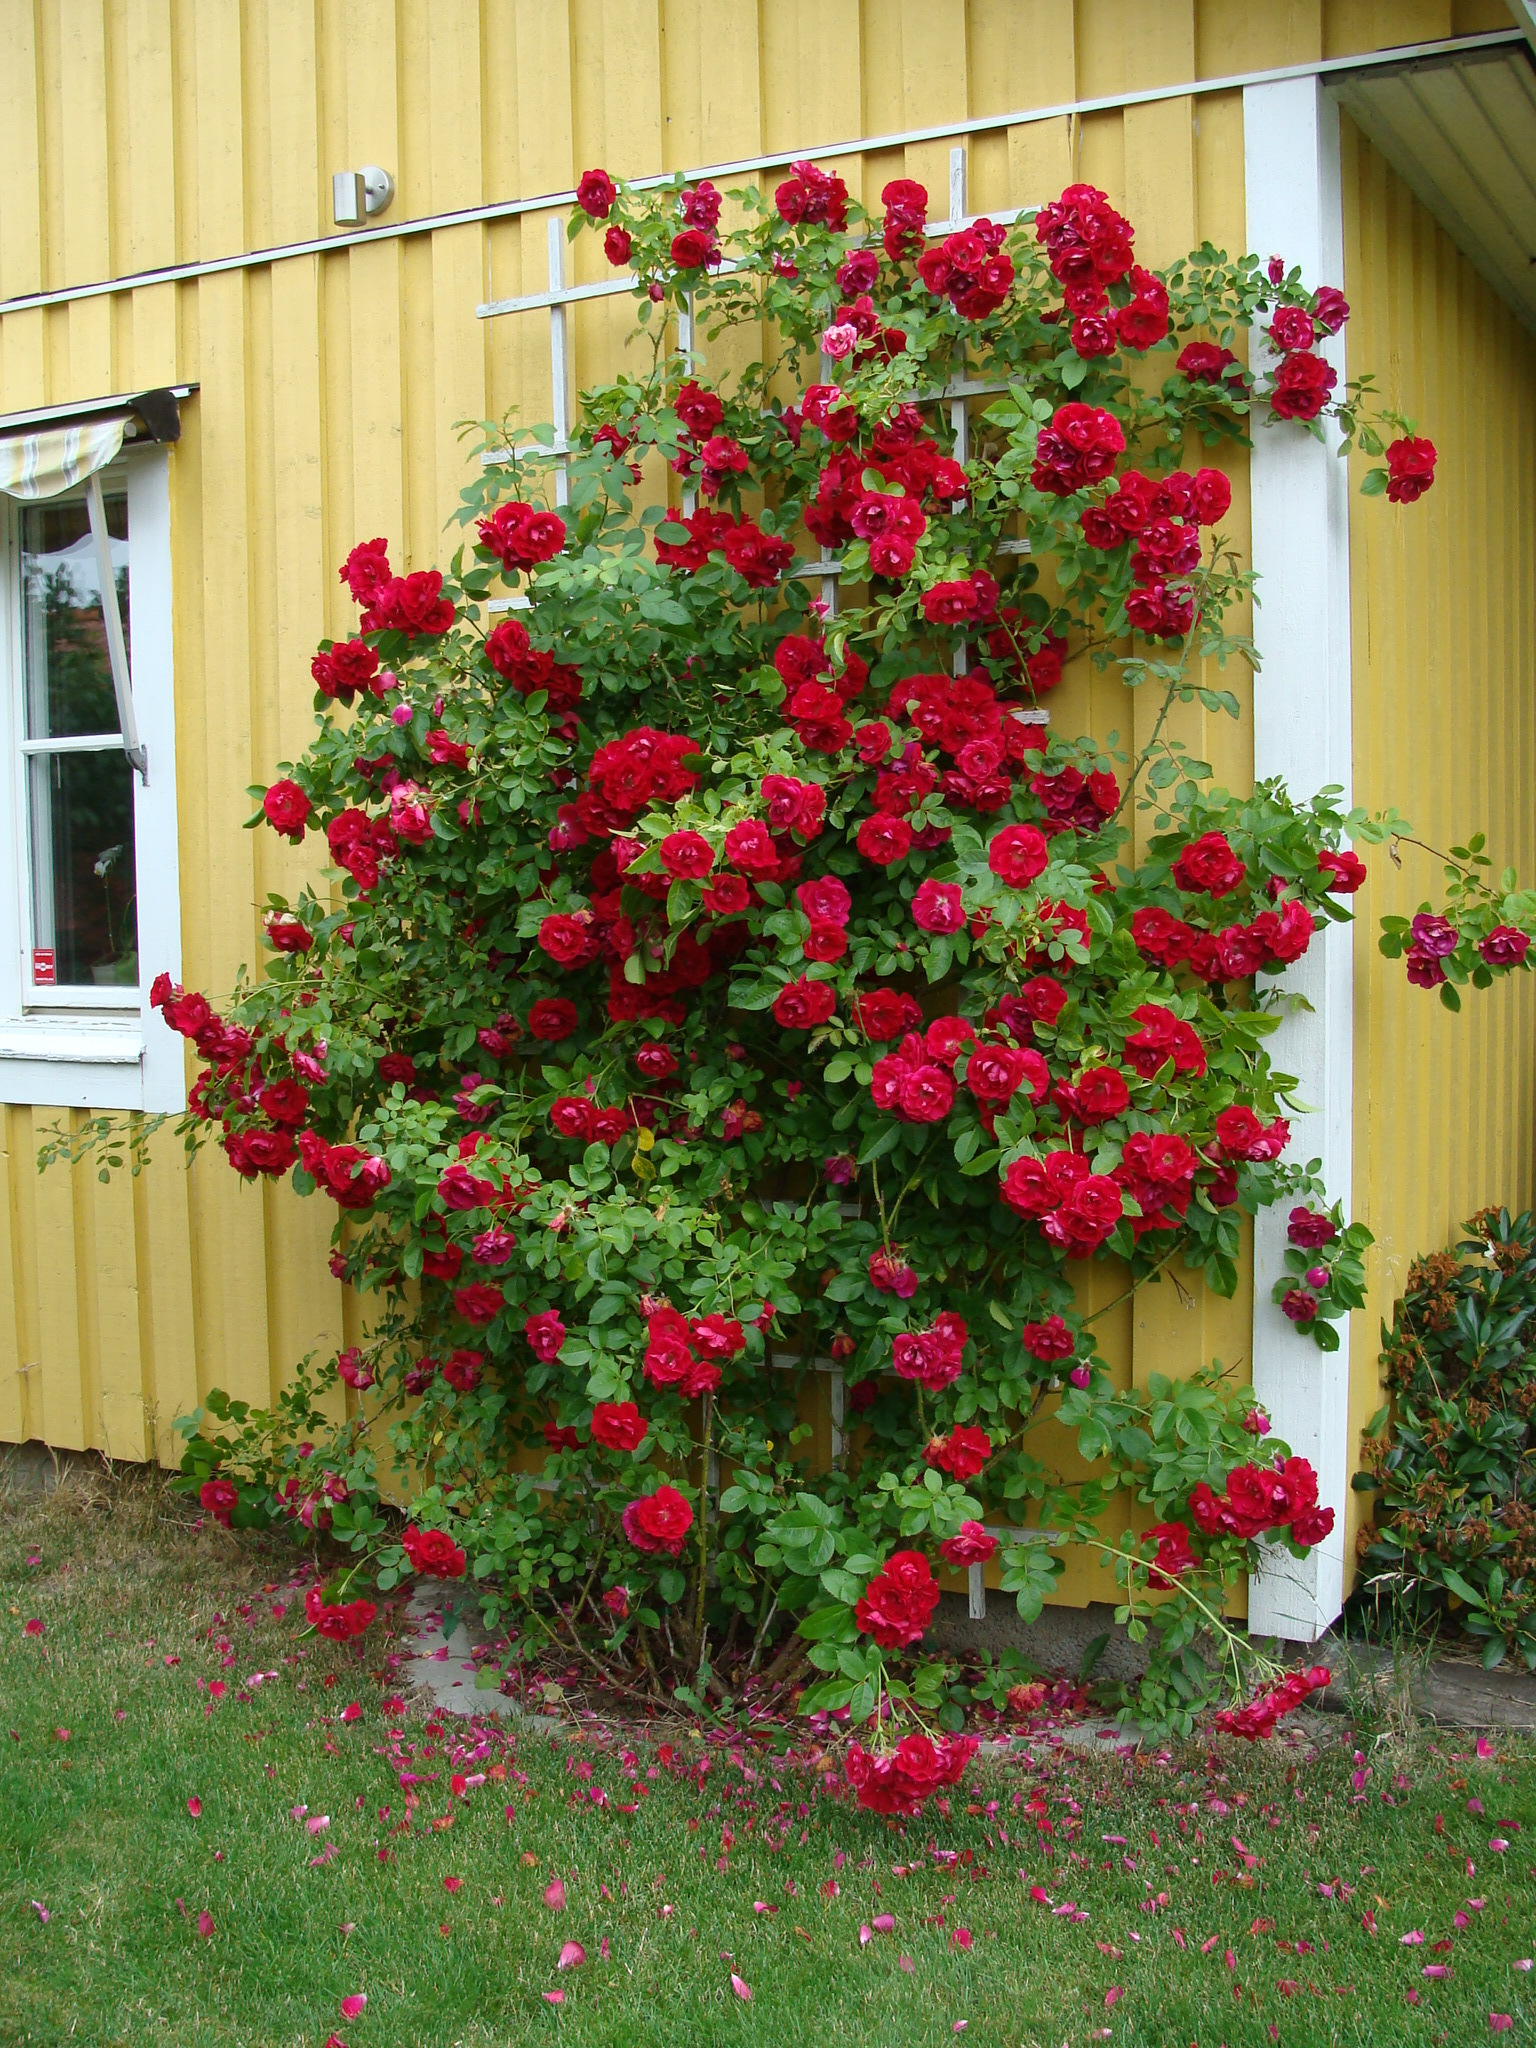 Pictures Of Rose Bushes